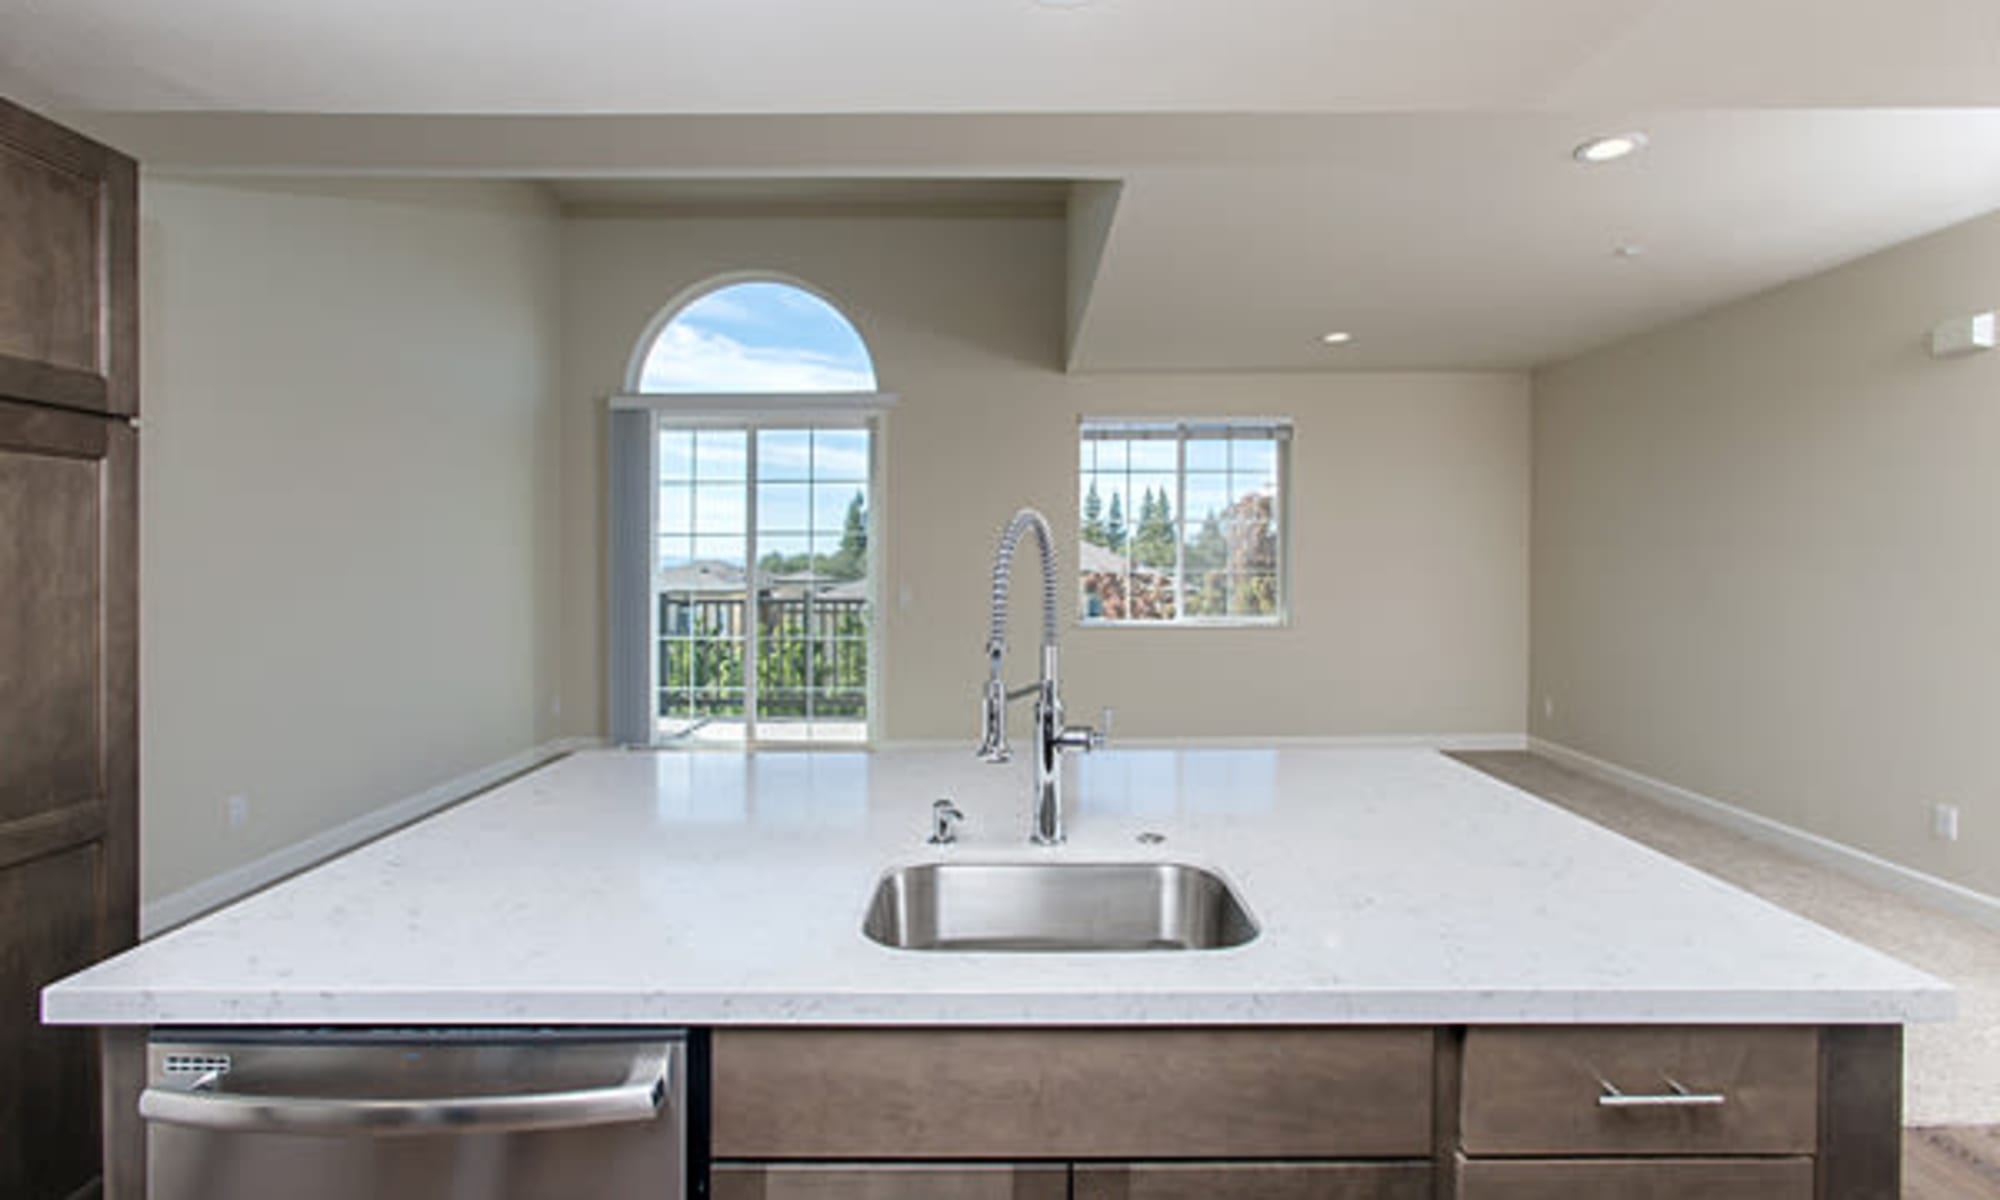 Luxury kitchens with an island at The Boulders at Fountaingrove